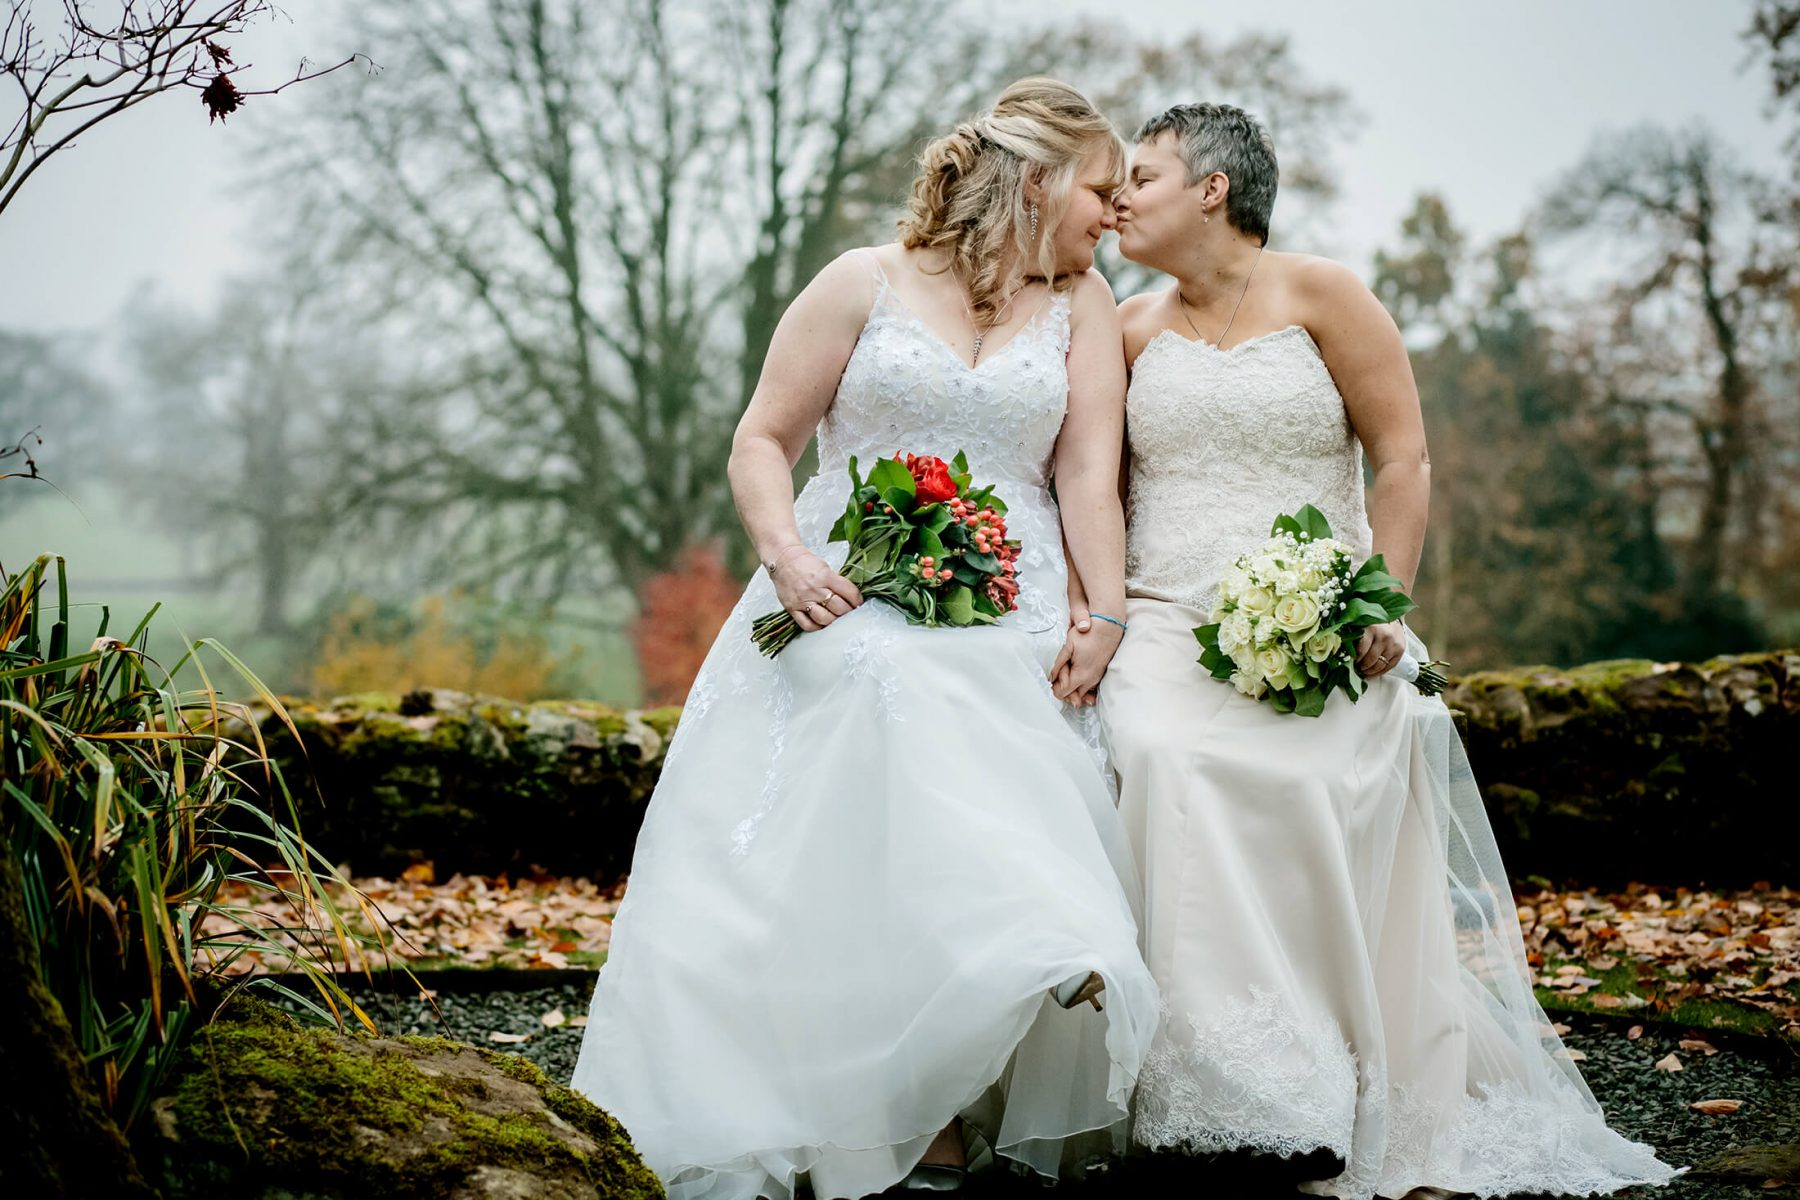 Two brides share a kiss after their wedding at The Upperhouse Hotel in Staffordshire. Same sex wedding photographer